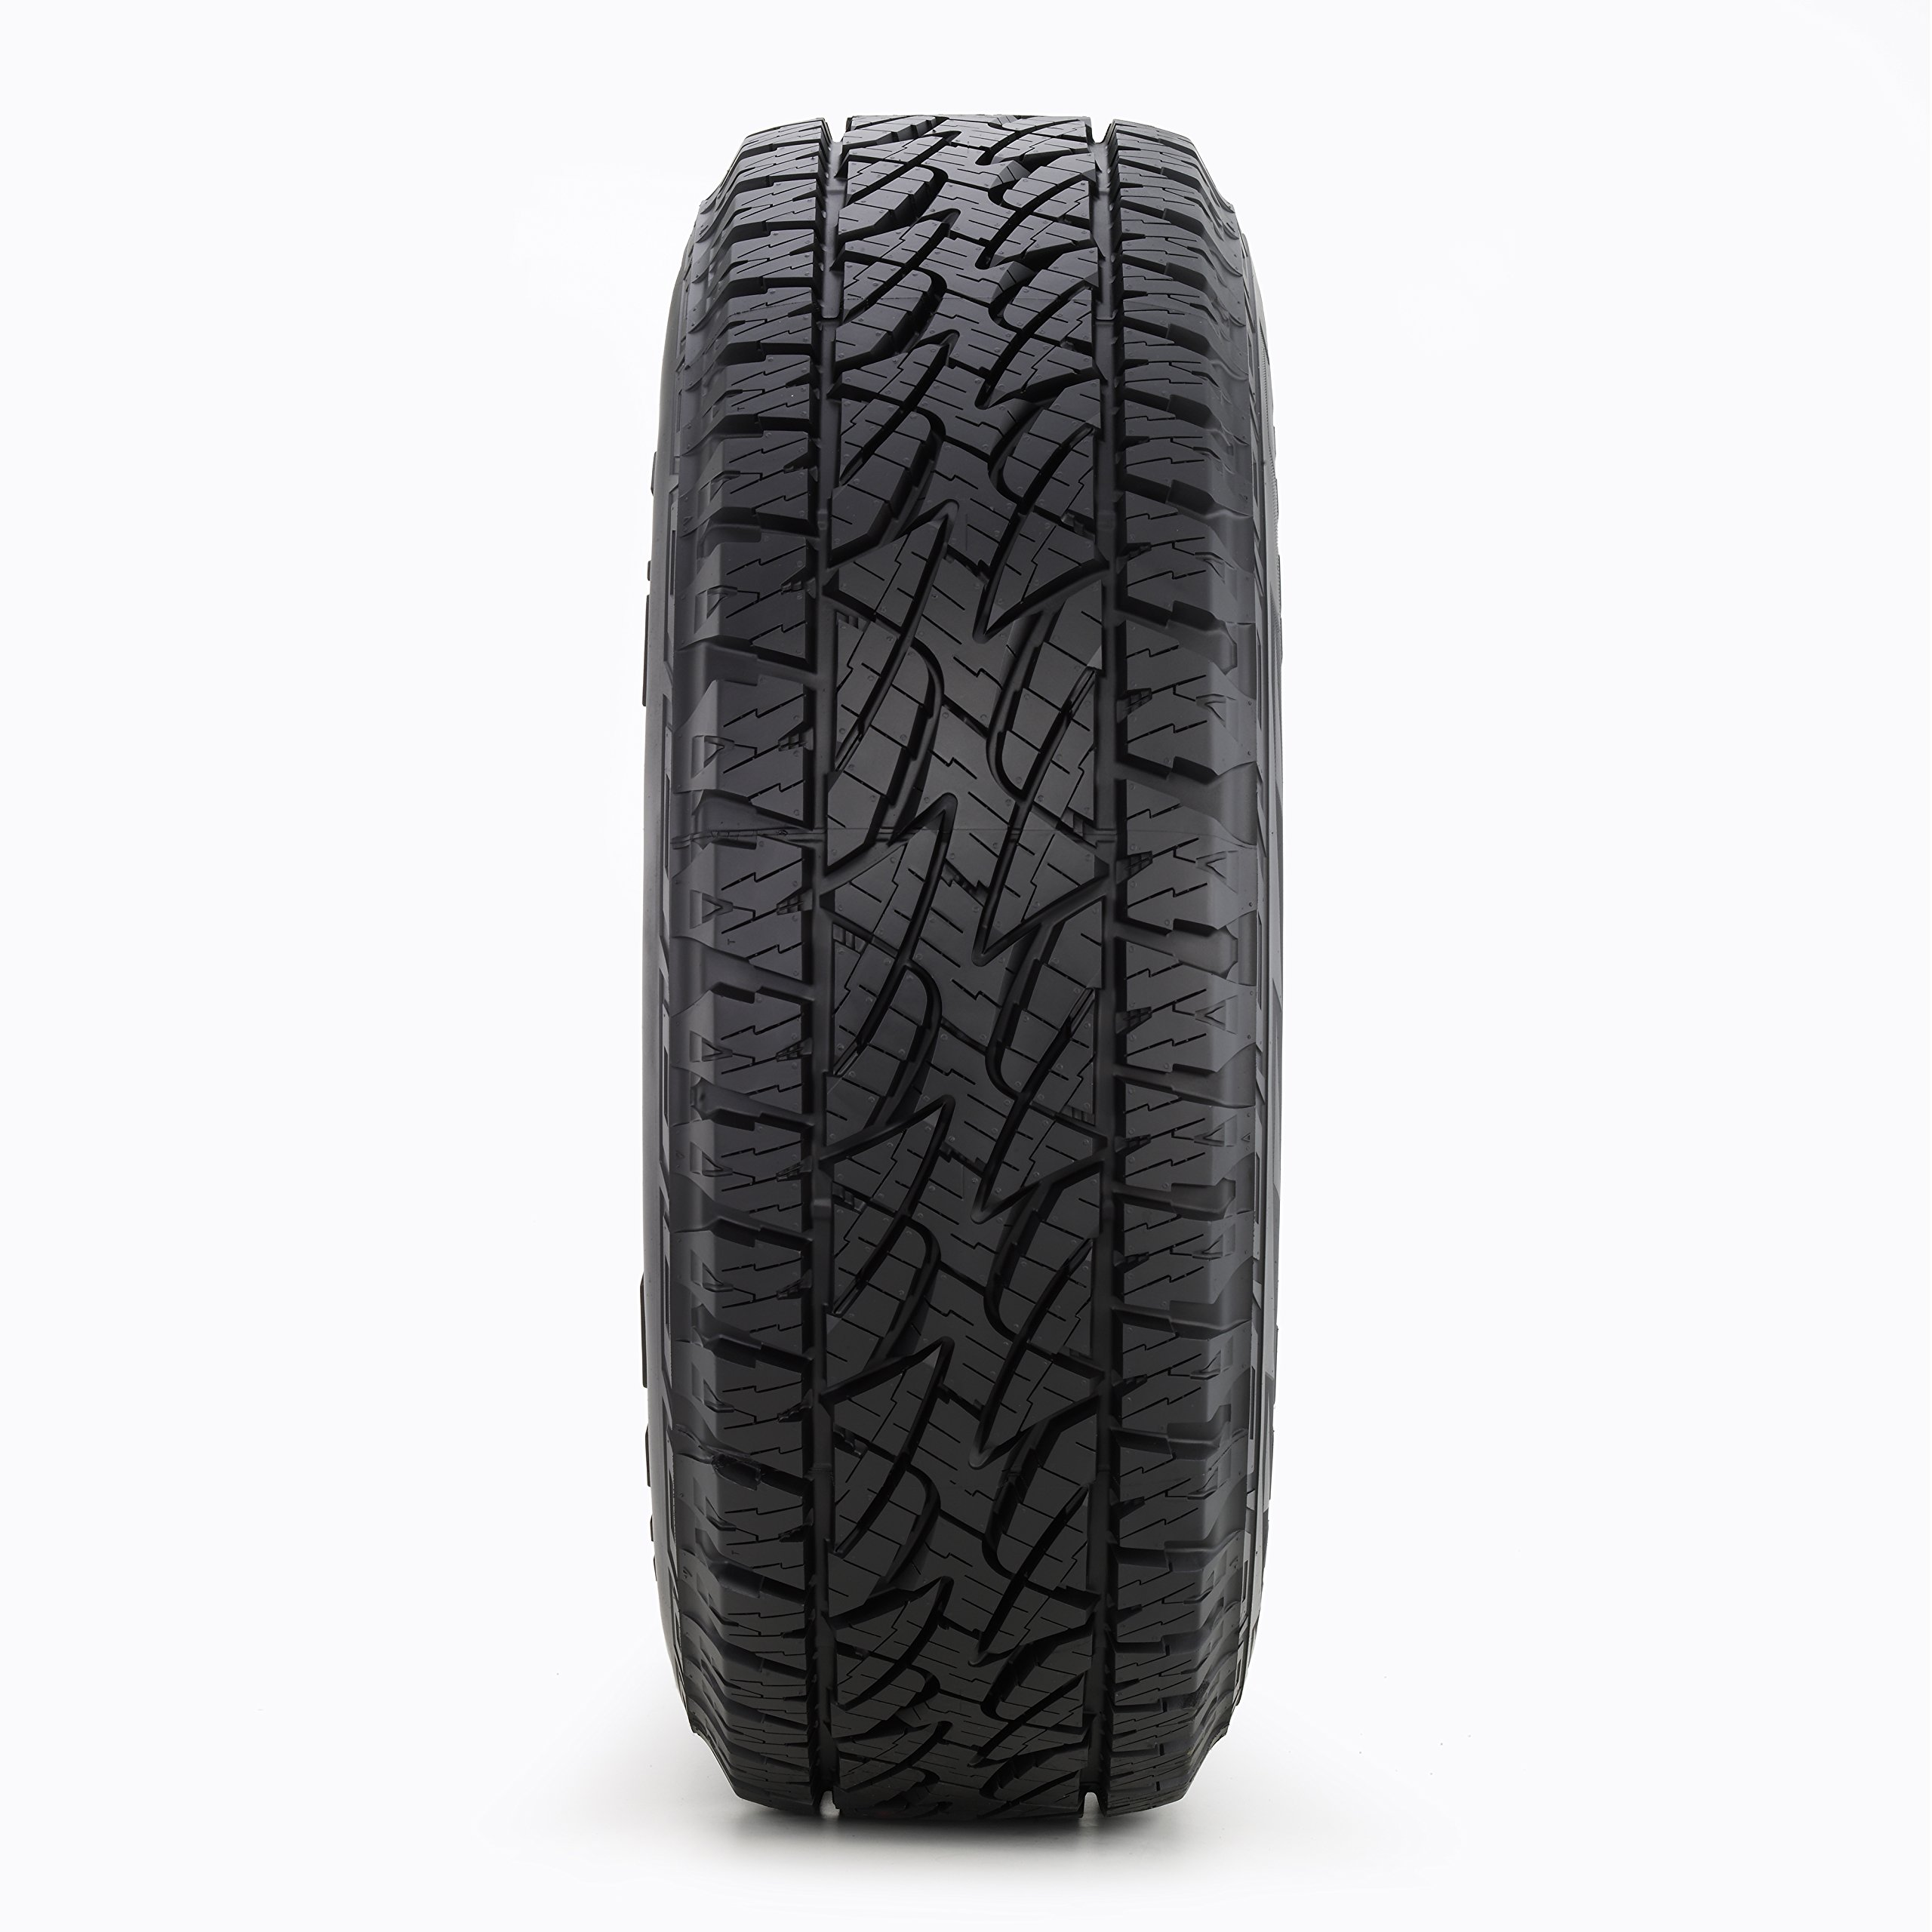 Bridgestone Dueler A/T REVO 2 All-Season Radial Tire - 275/65R18 114T by Bridgestone (Image #4)